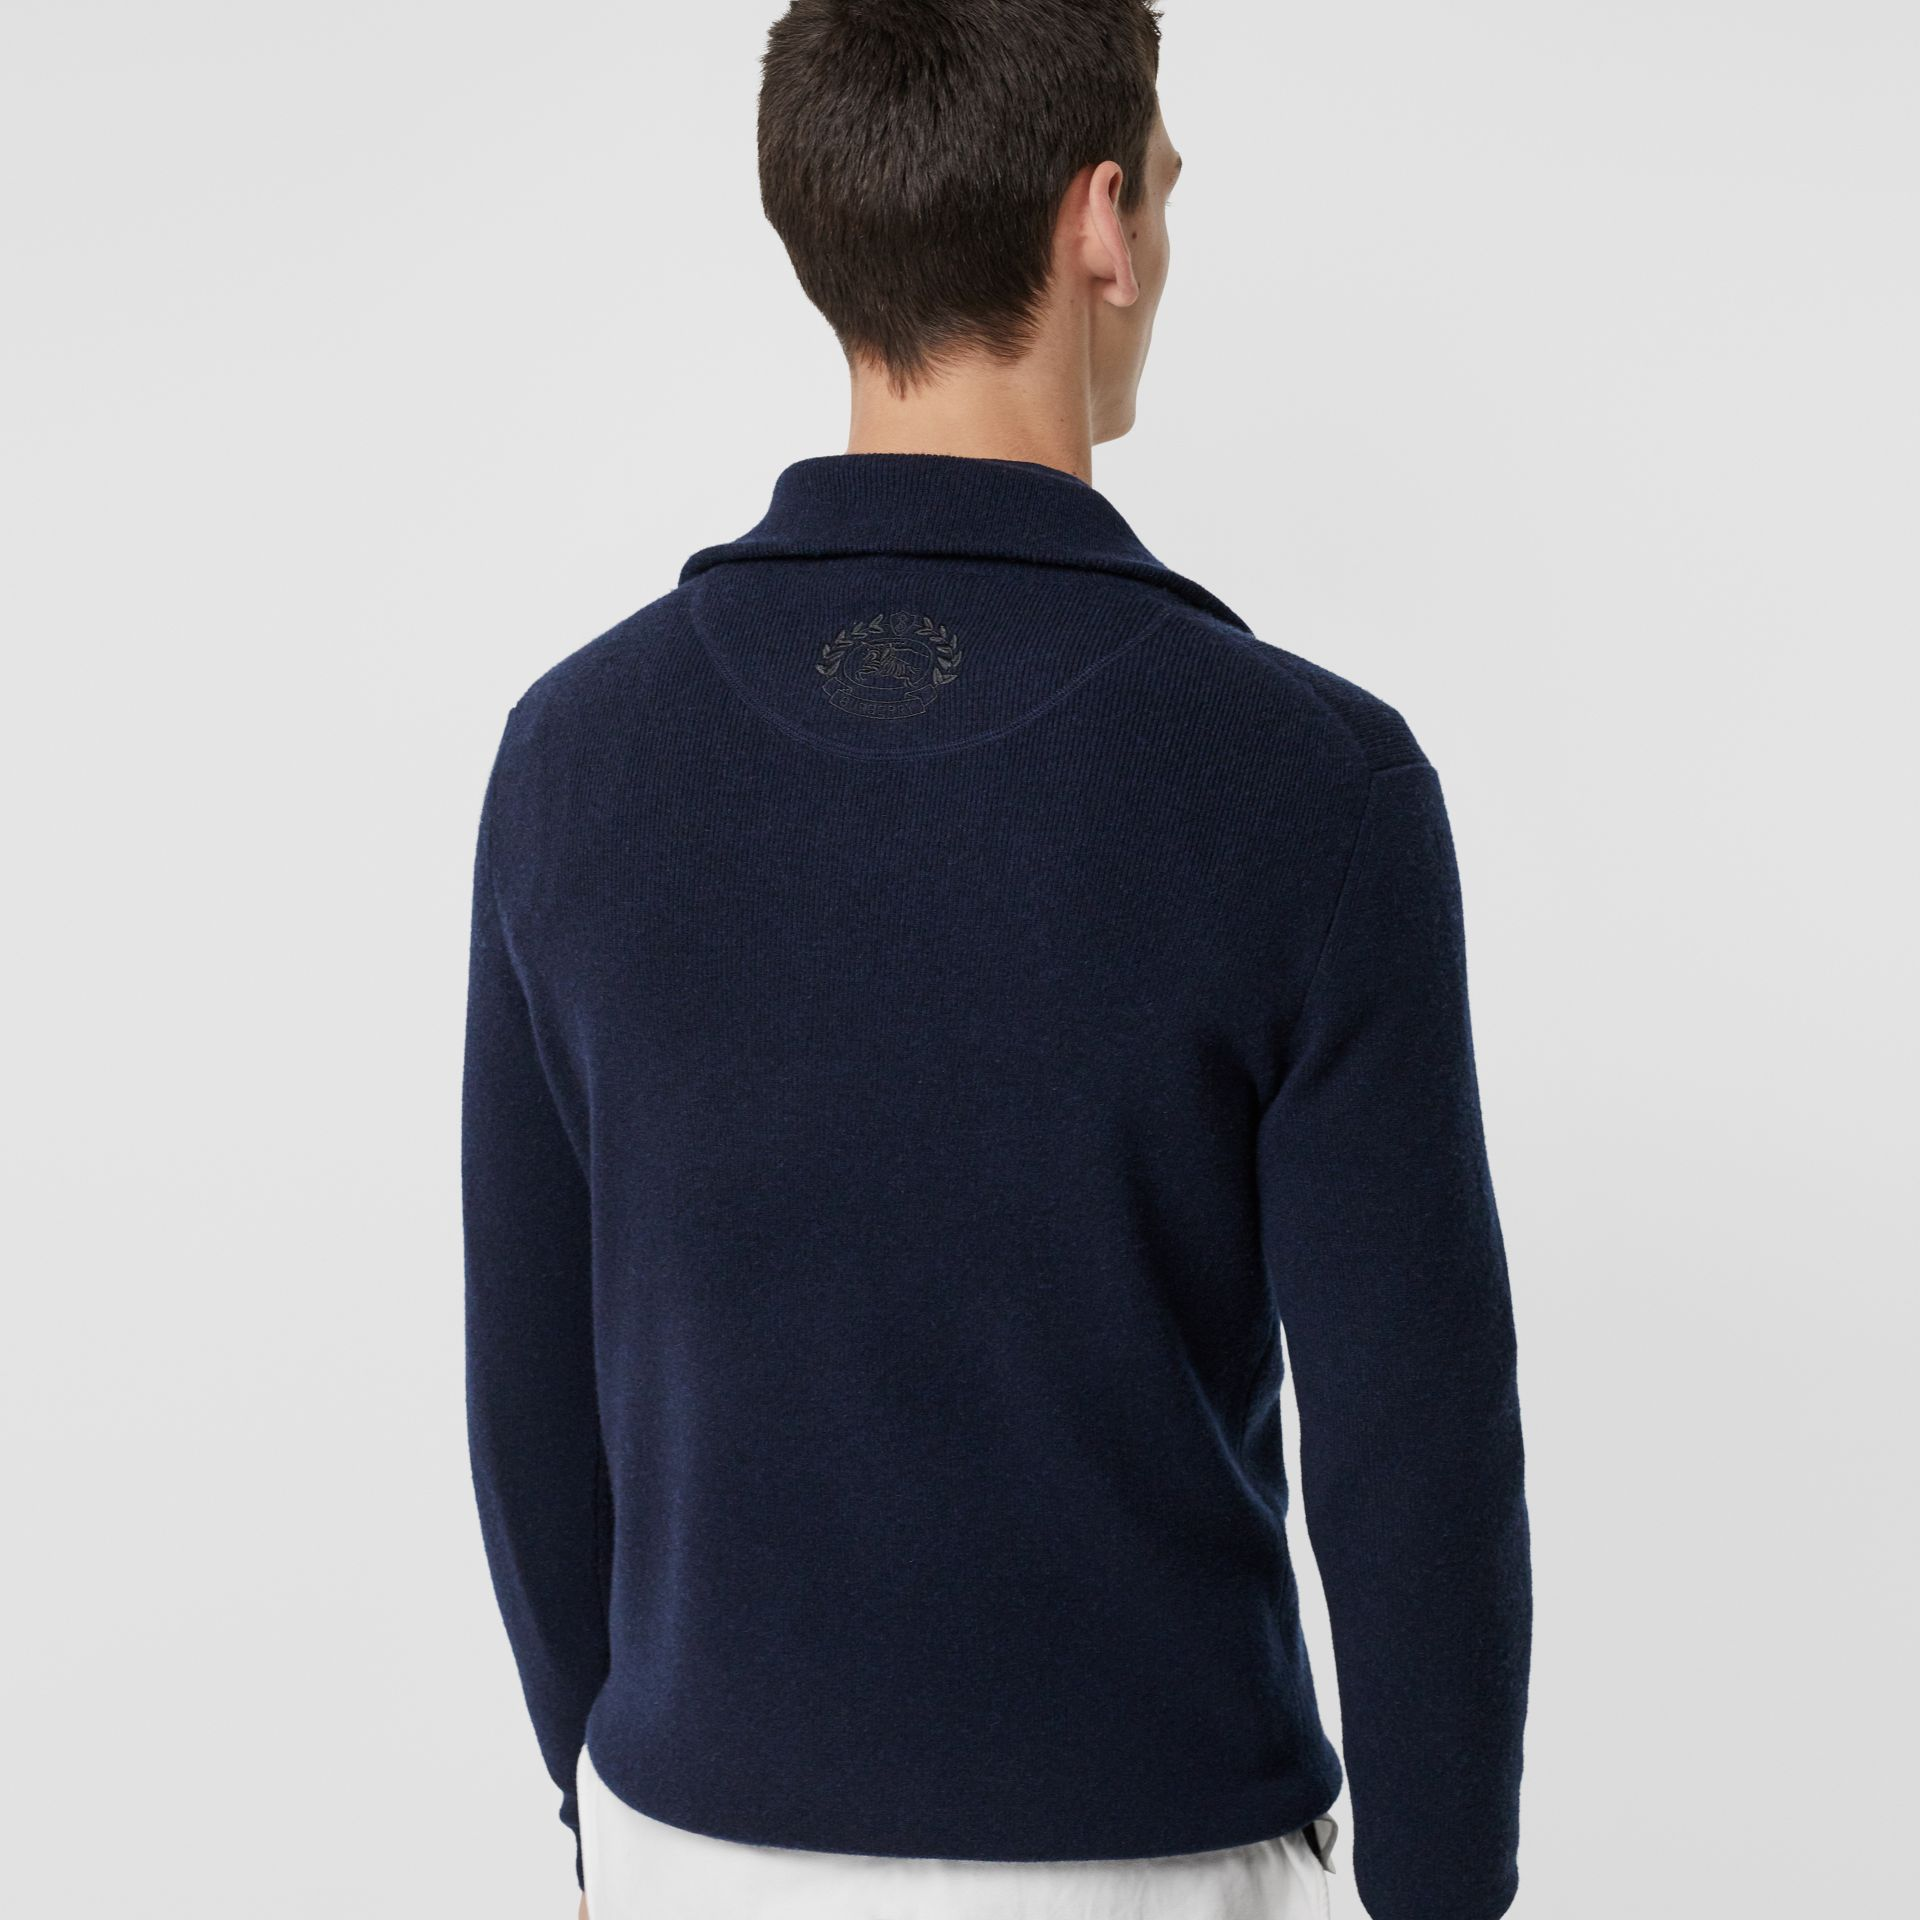 Rib Knit Cashmere Half-zip Sweater in Navy - Men | Burberry Canada - gallery image 2